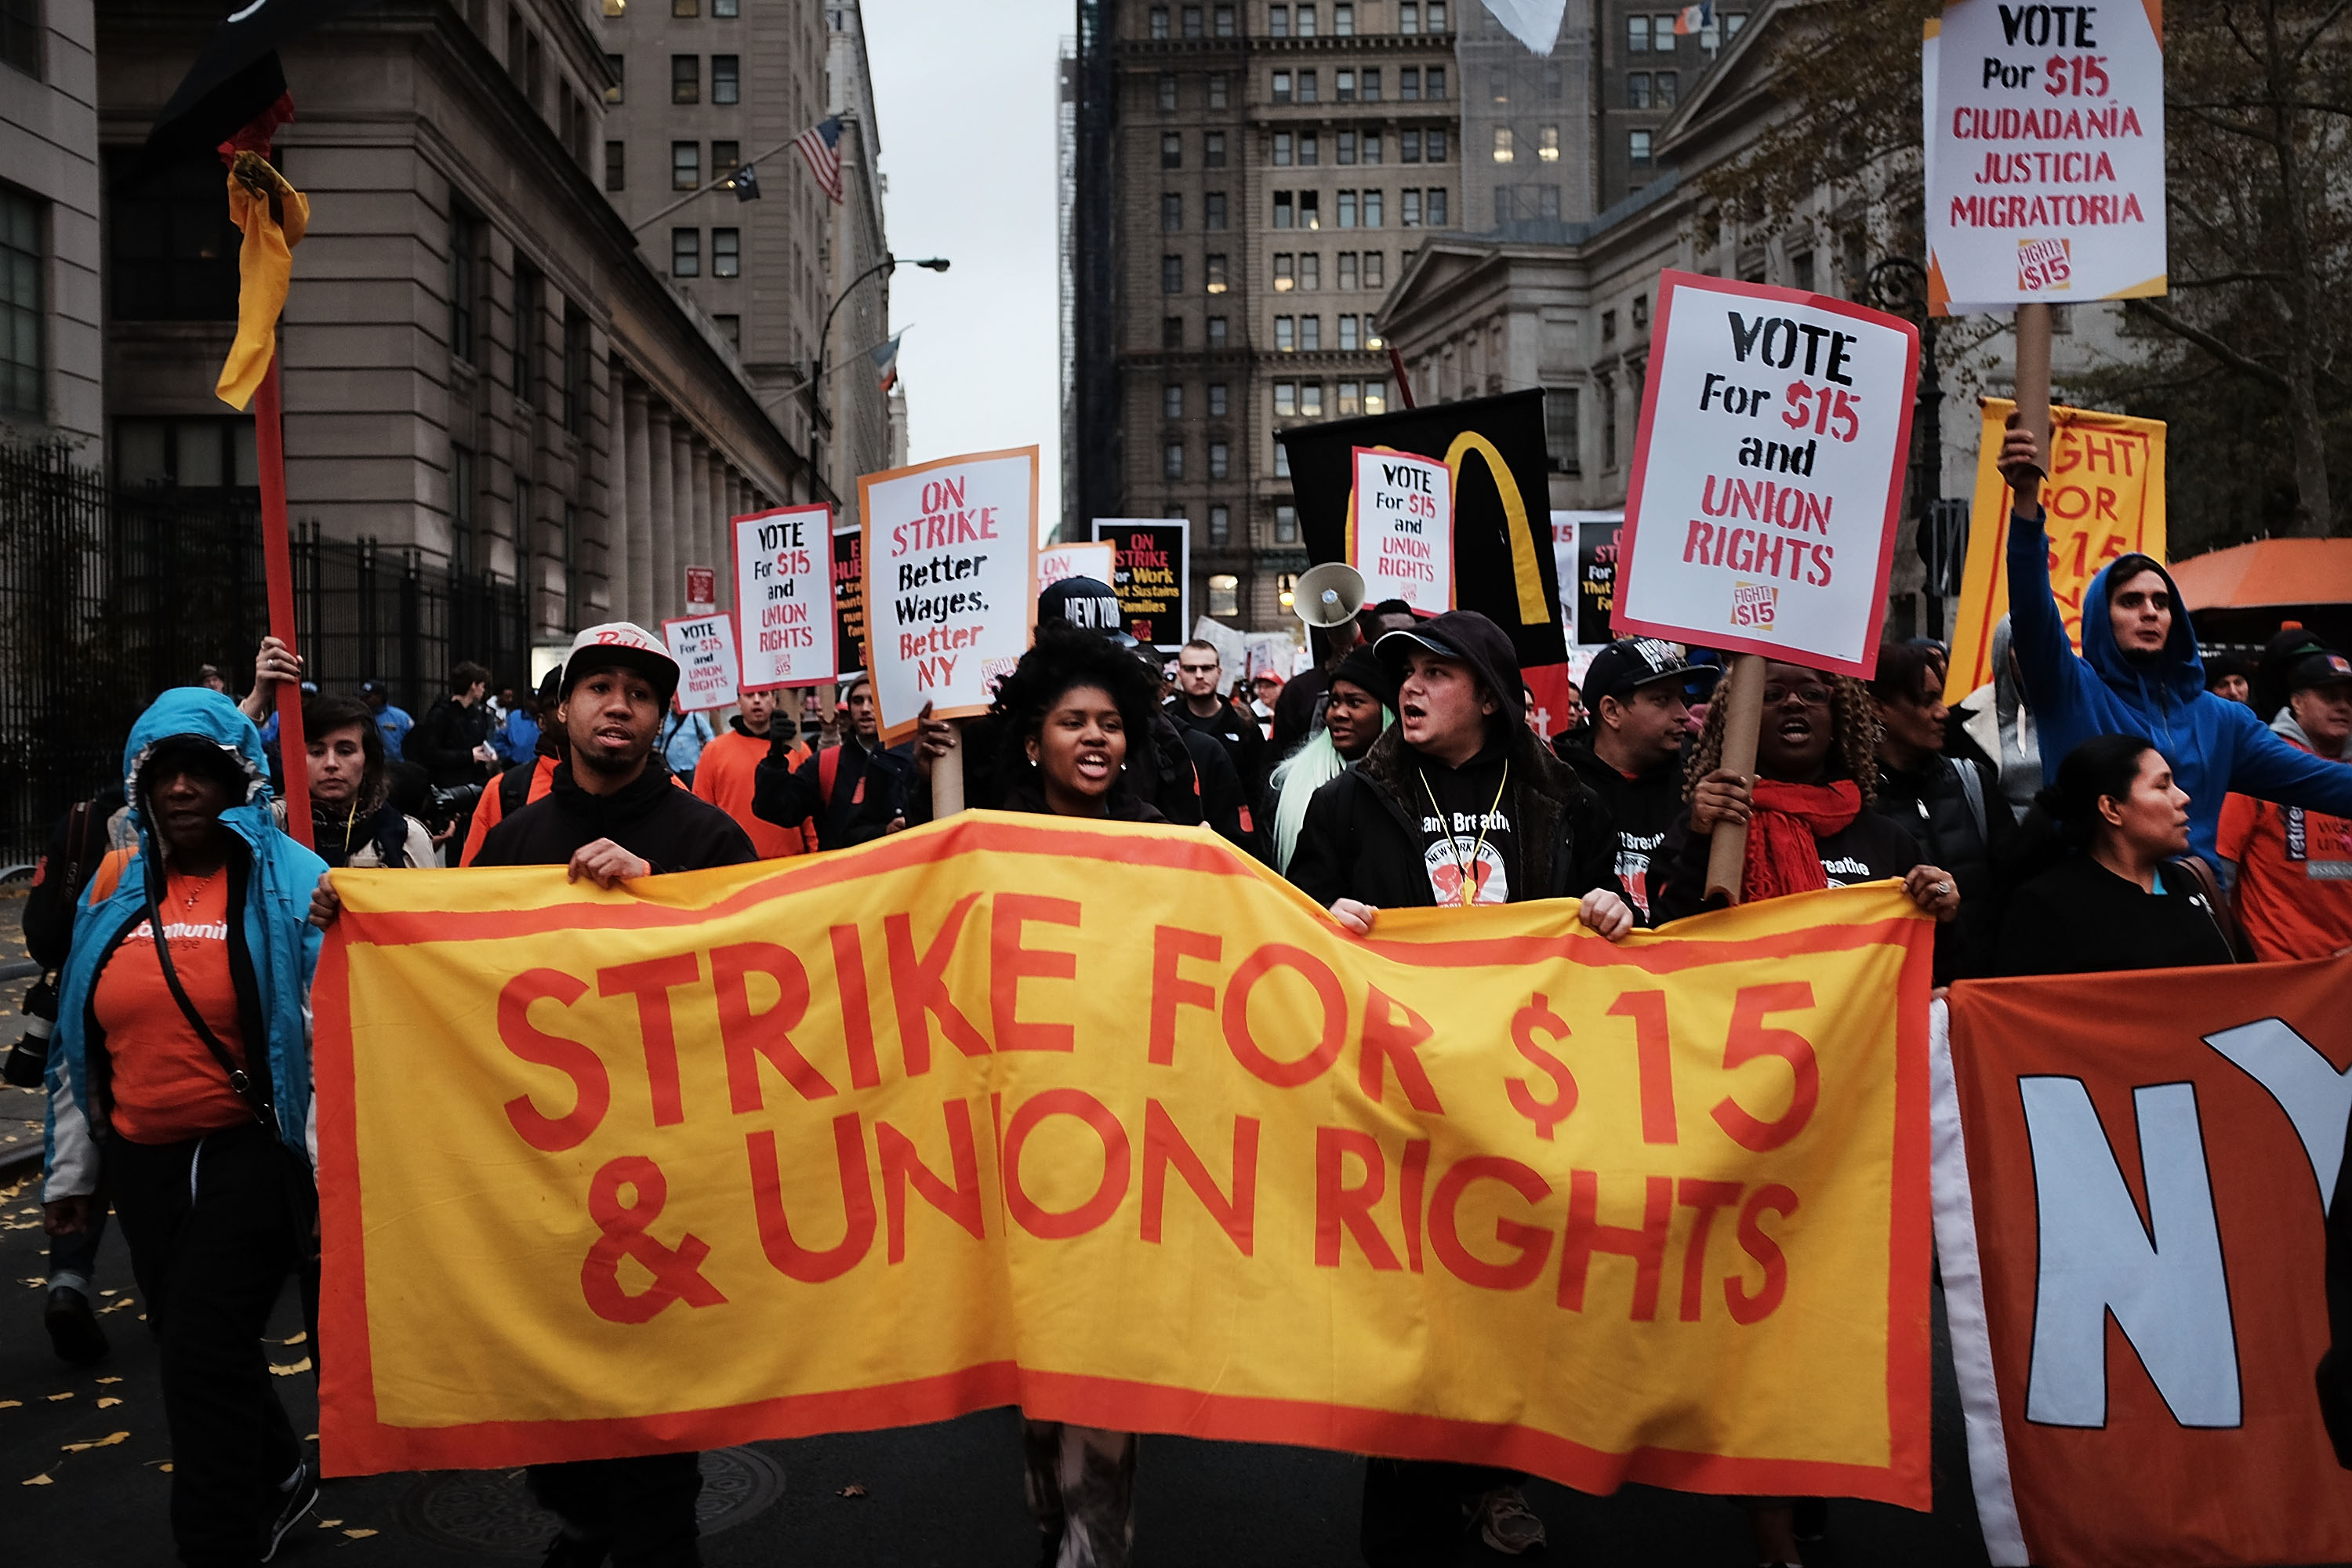 Protestors Rally Across US On National Day Of Action For $15 Minimum Wage